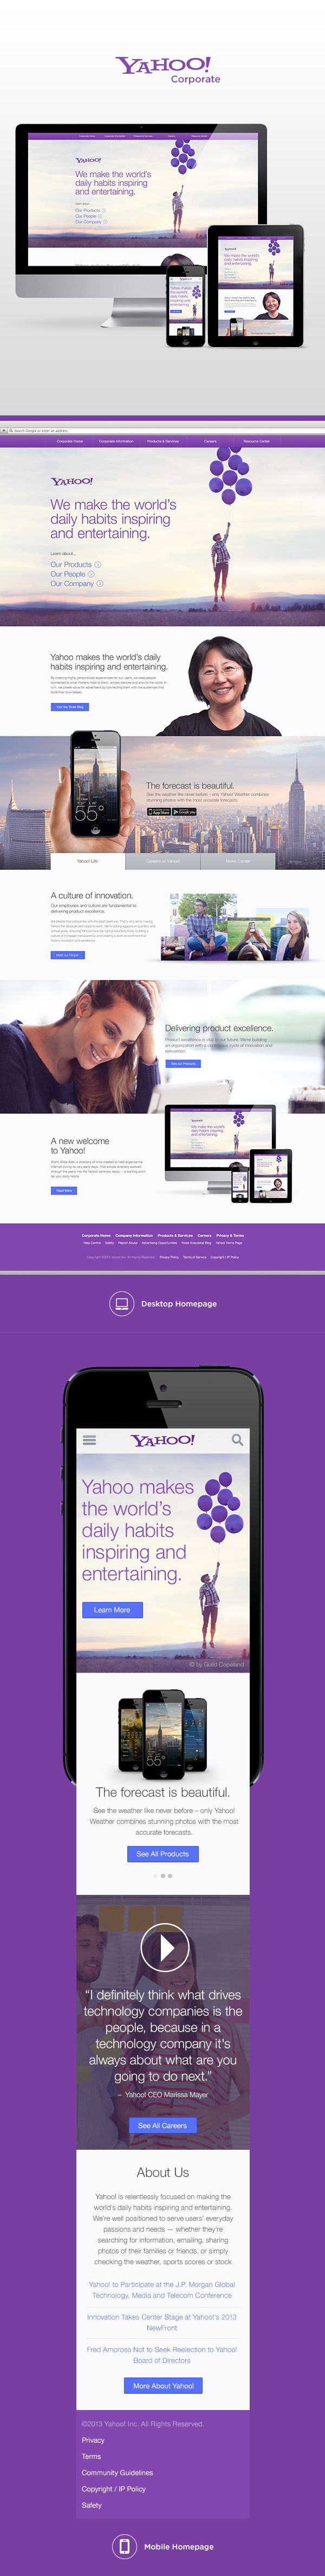 Yahoo! Corporate Redesign by Justin Freiler, via Behance